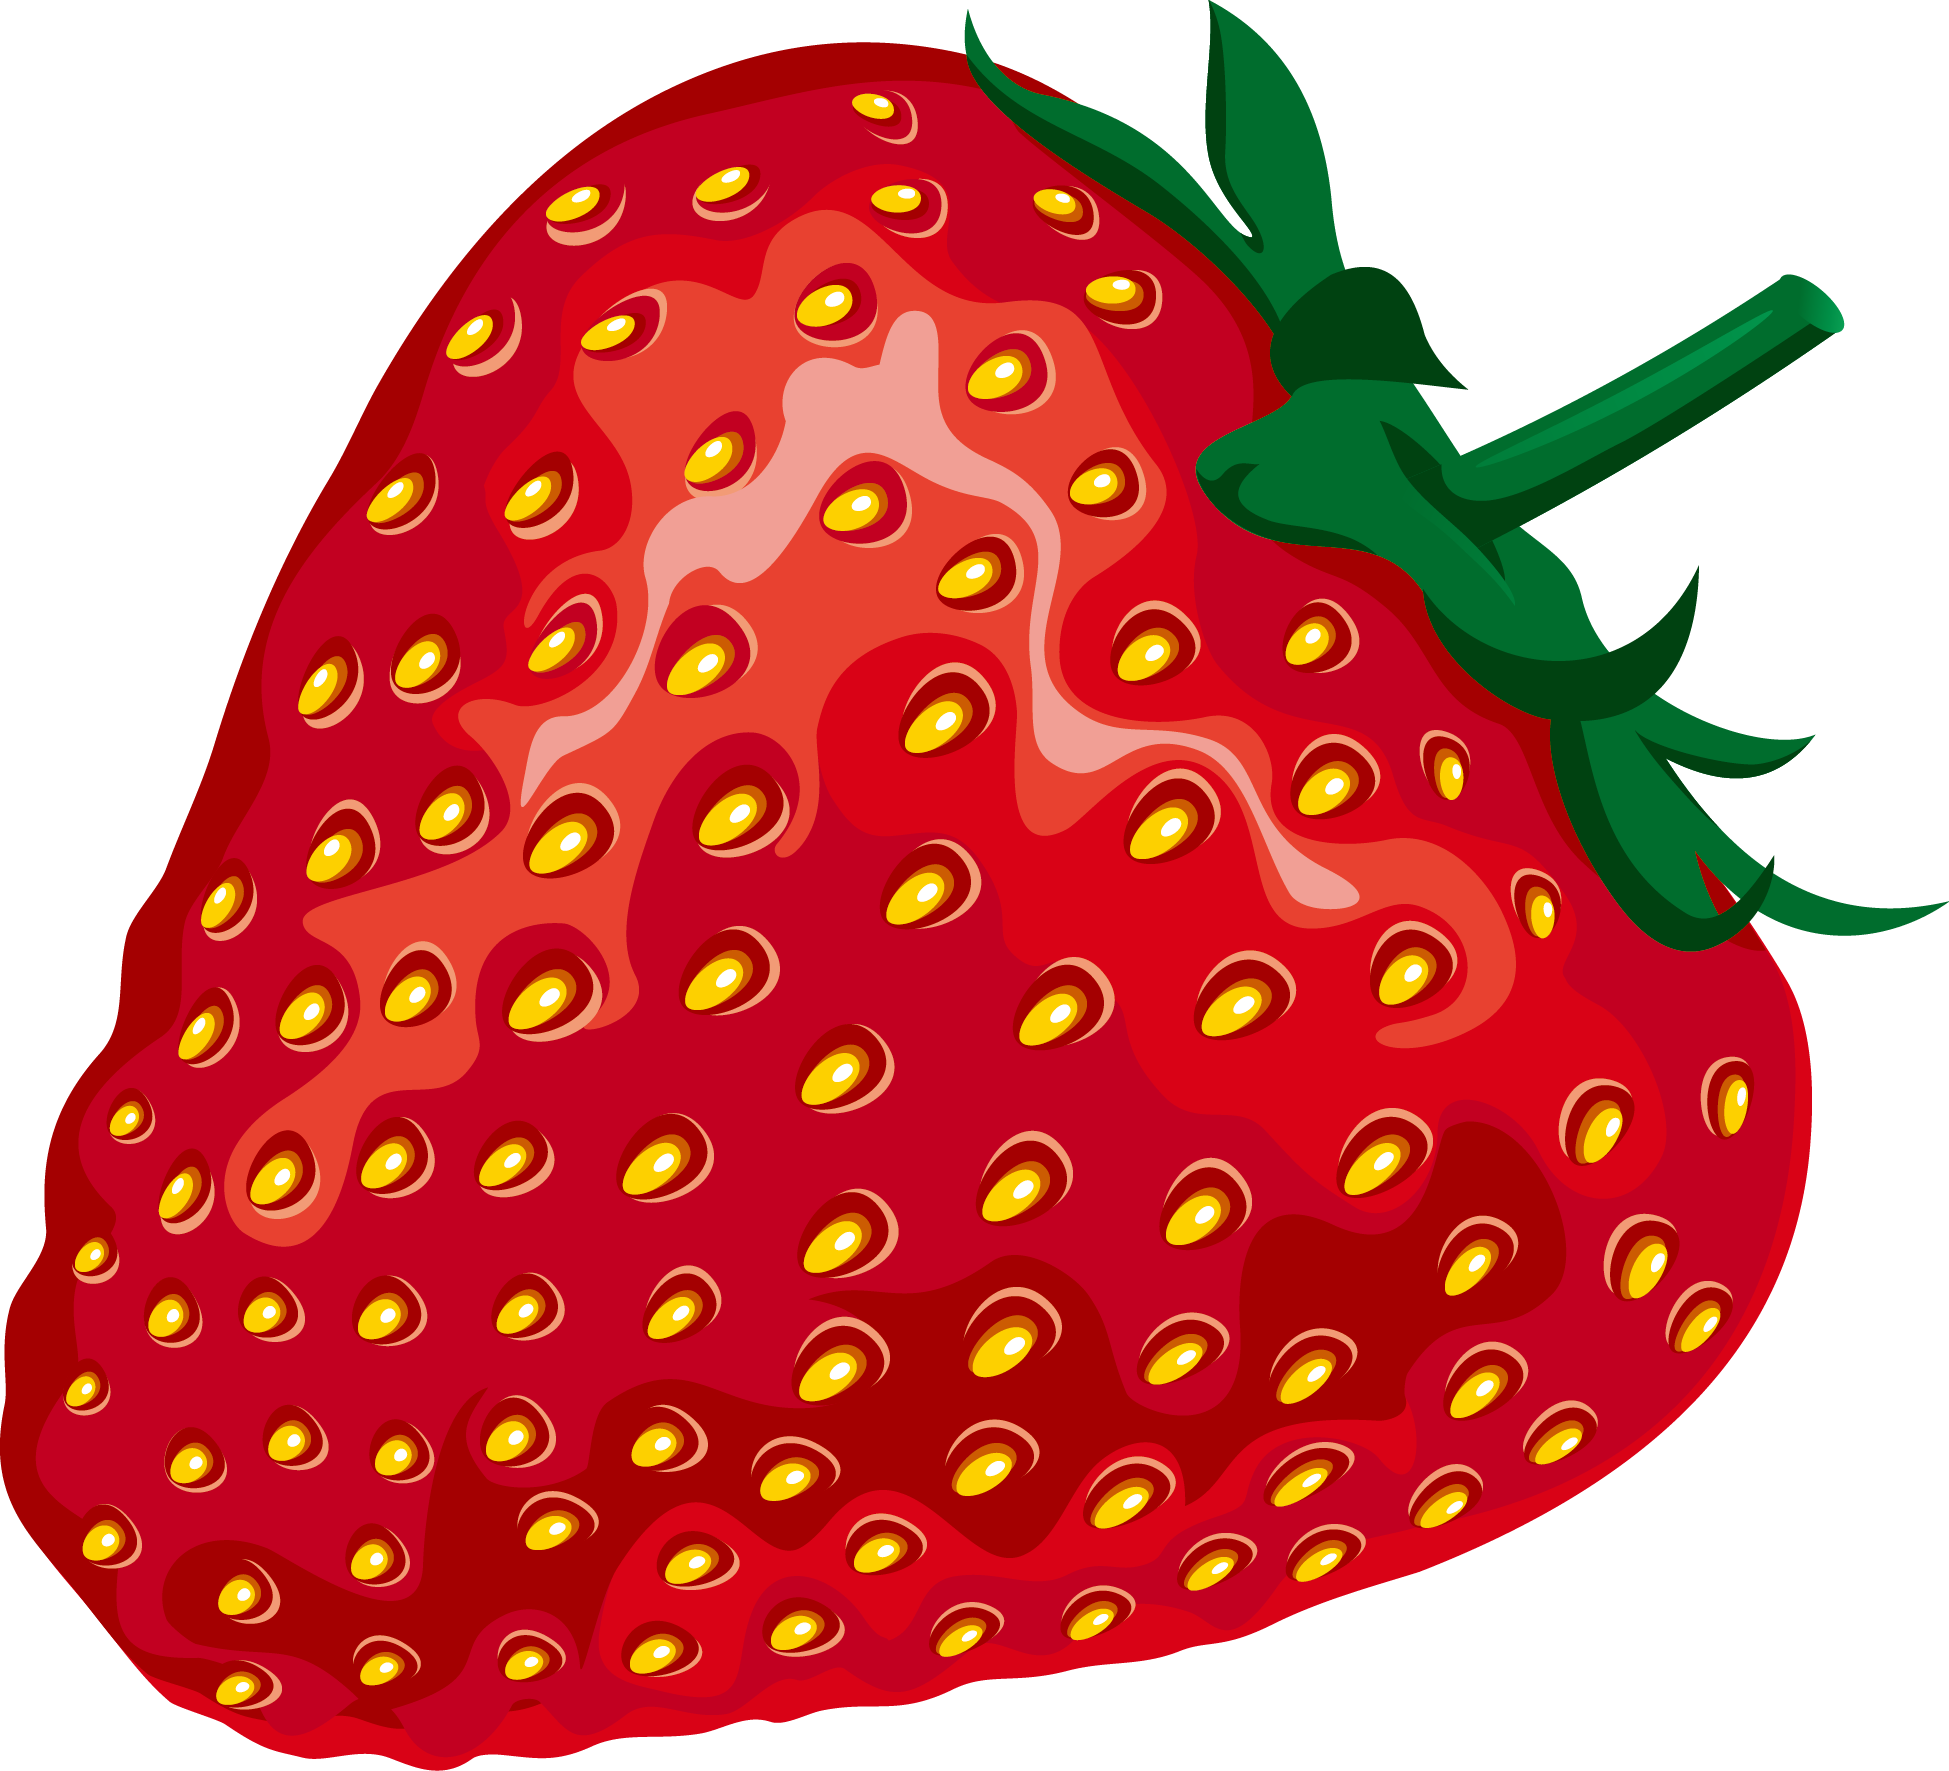 Watermelon clipart strawberry. Fruit red aedmaasikas elements